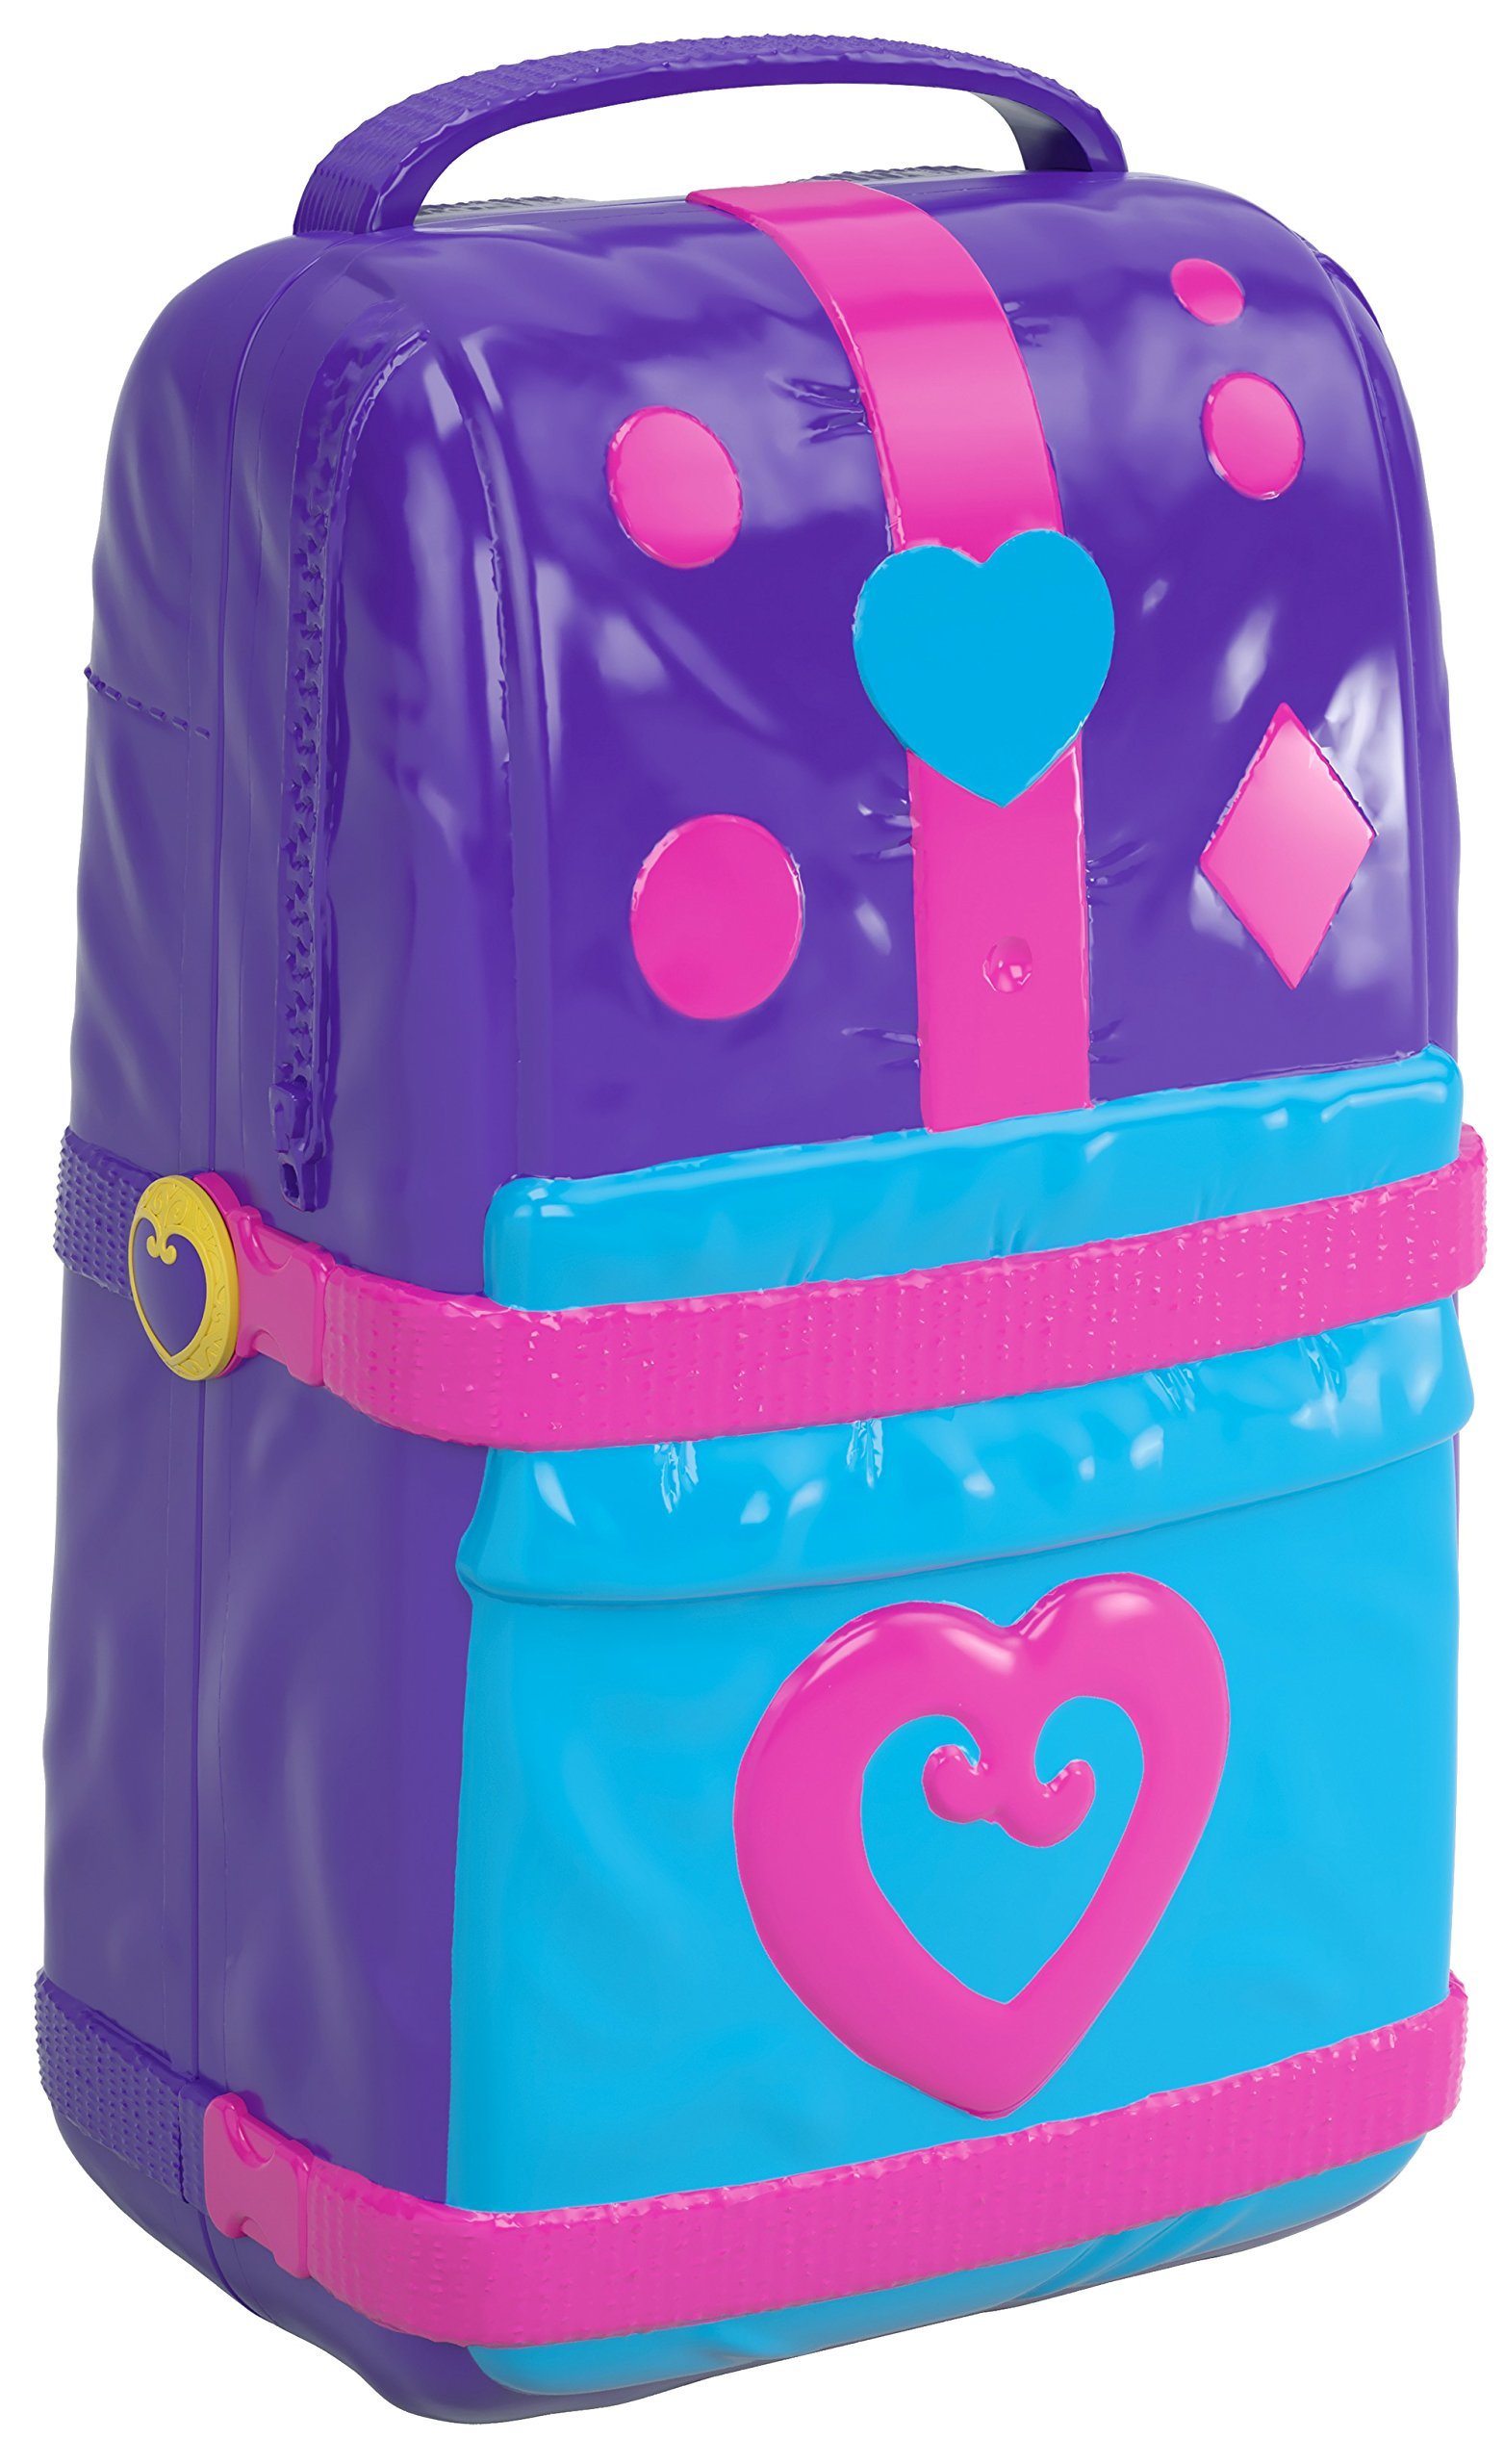 Polly Pocket Beach Vibes Figure, Multicolor by Polly Pocket (Image #7)